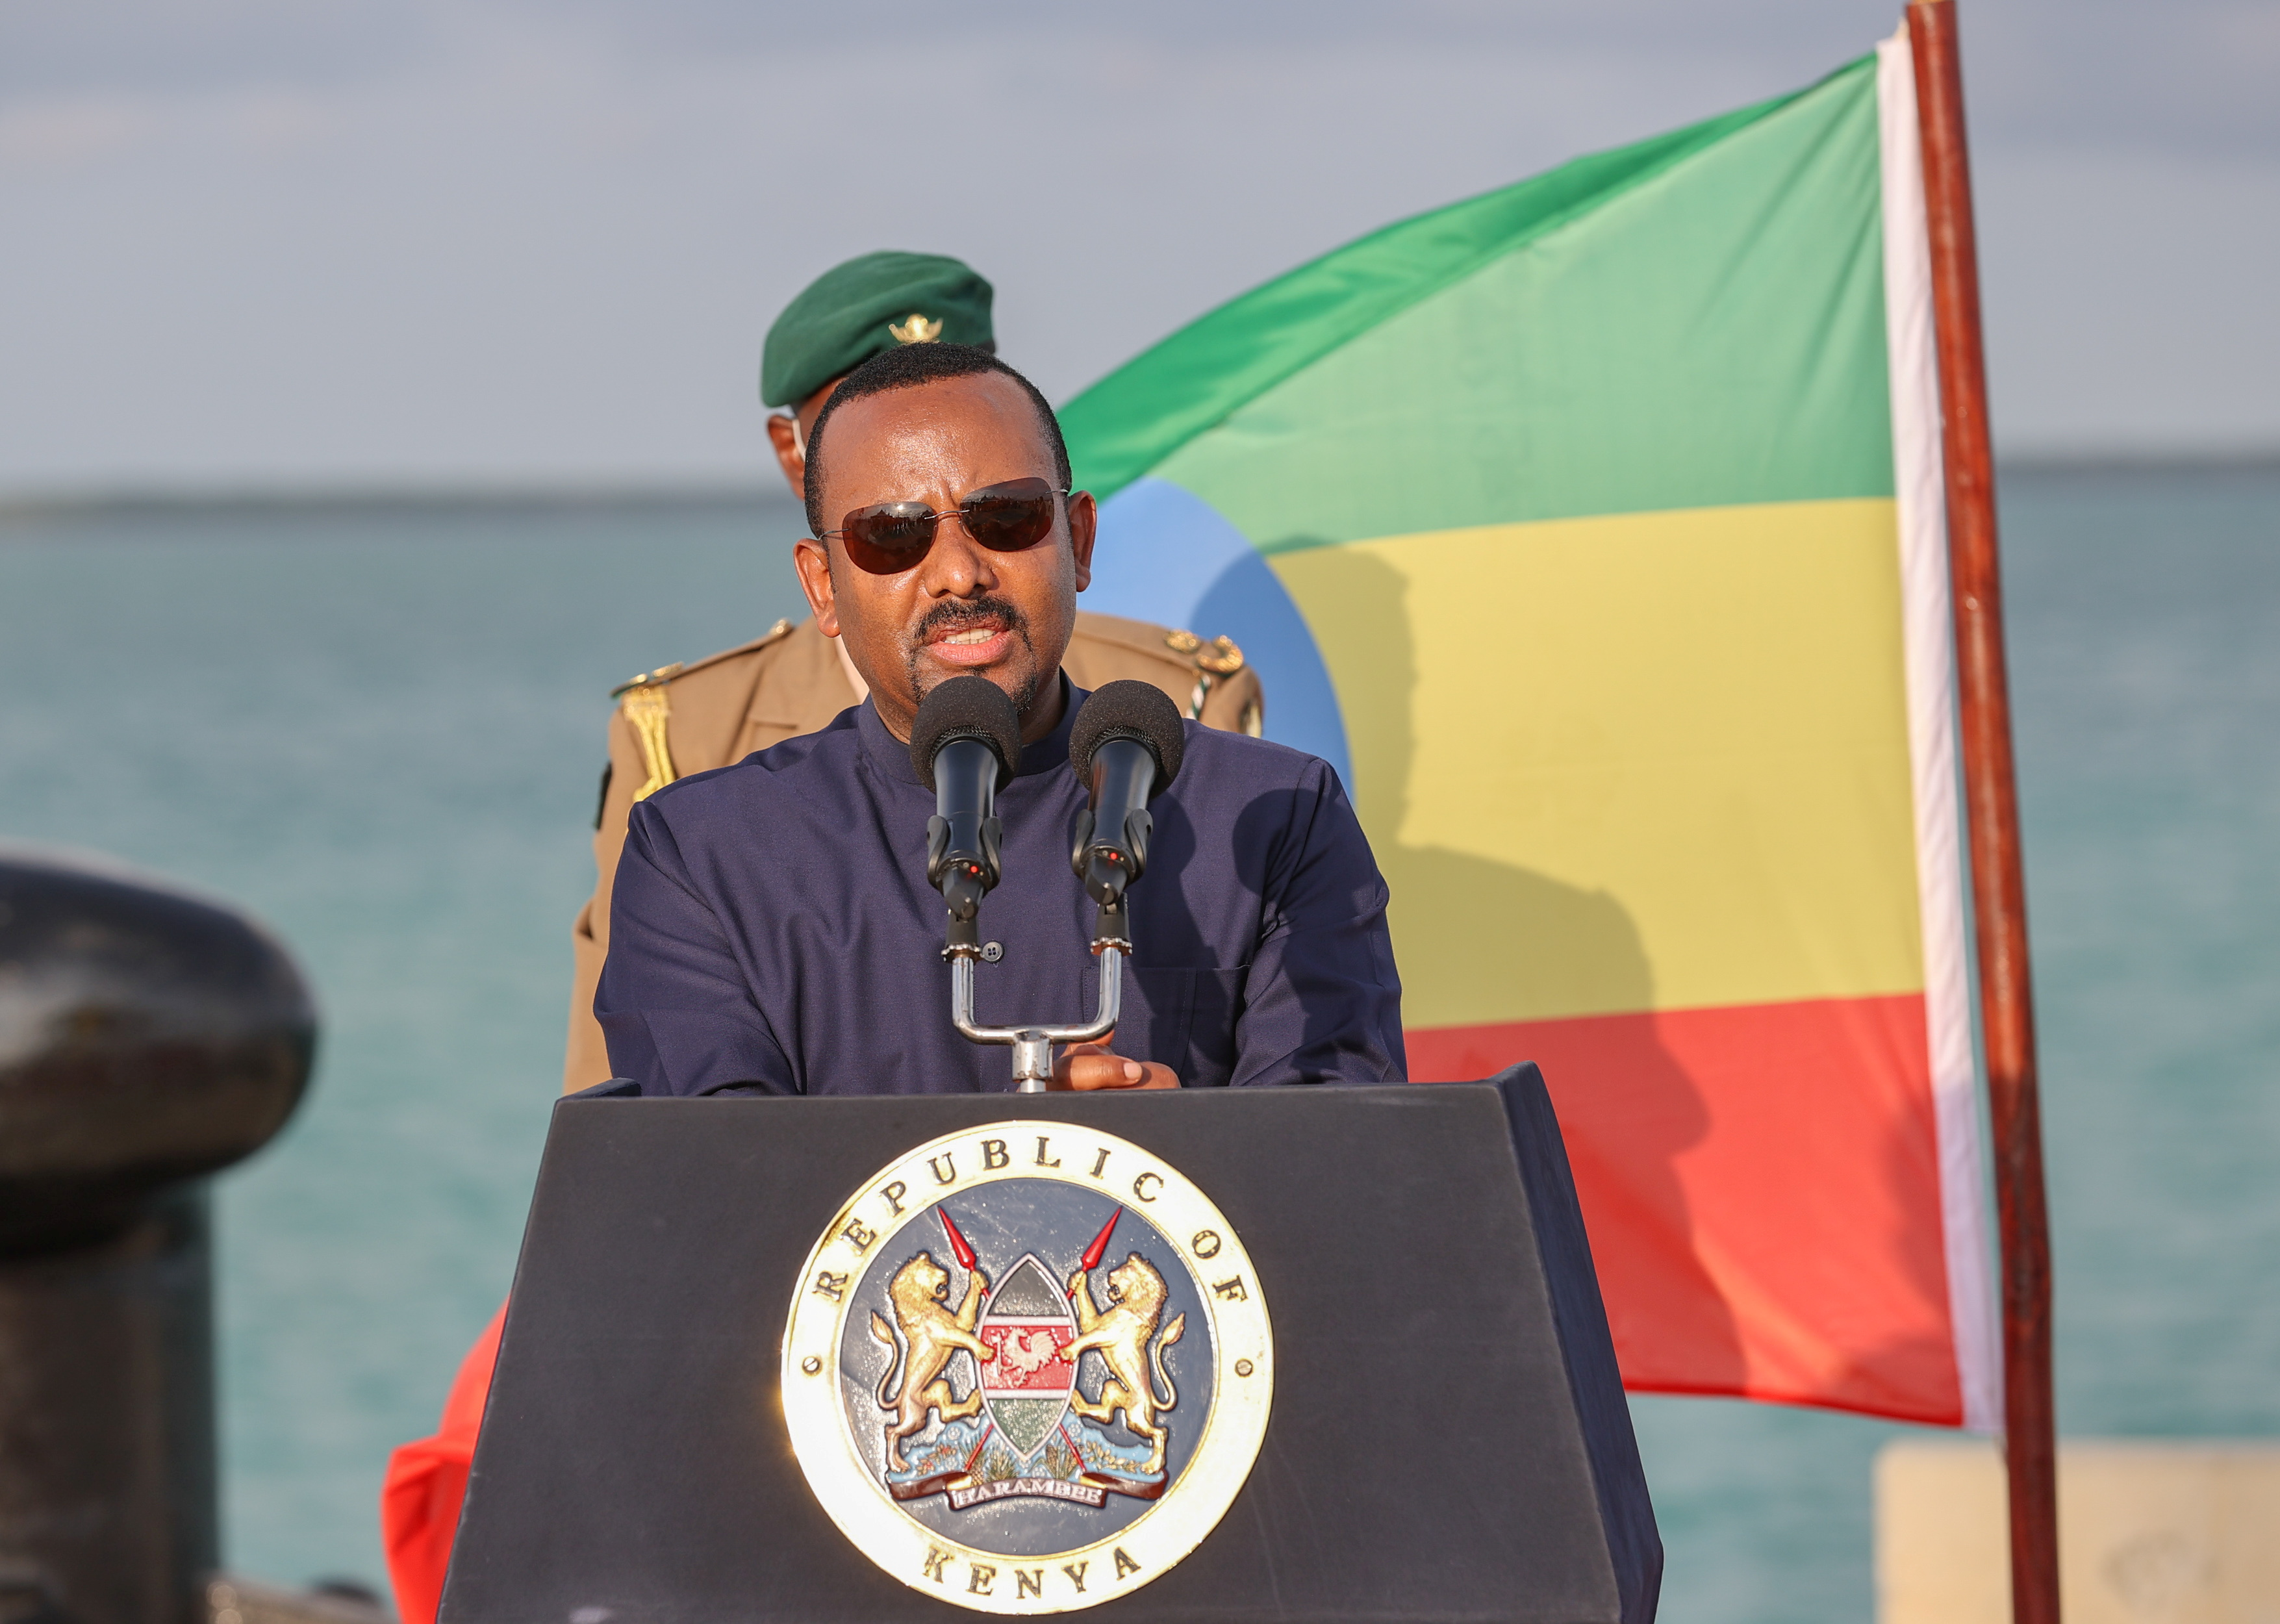 Ethiopian Prime Minister Abiy Ahmed address the media after inspecting ongoing developments at the new 32-berth Lamu Port in Lamu County, Kenya December 9, 2020. Presidential Press Service/Handout via REUTERS